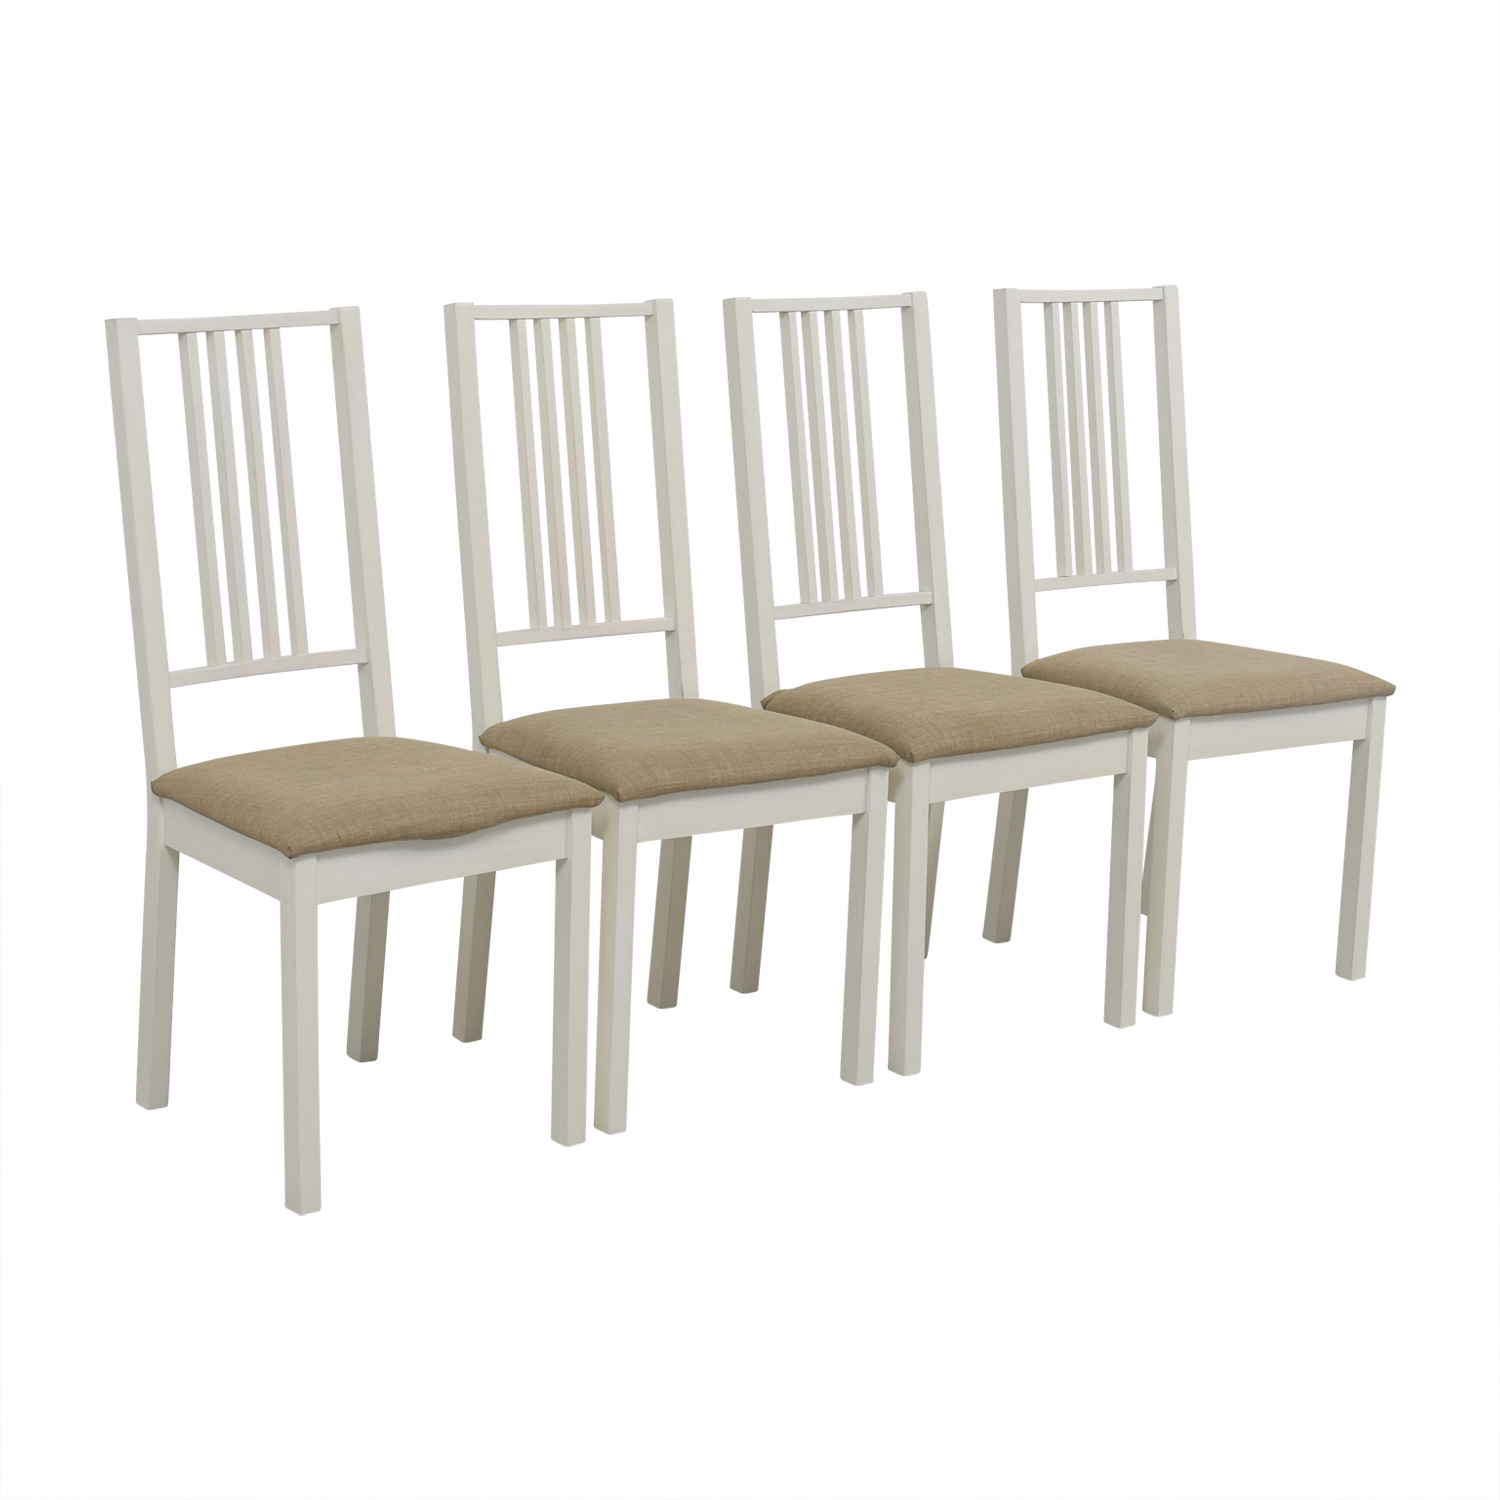 Surprising 82 Off Ikea Ikea White With Tan Upholstered Dining Chairs Chairs Bralicious Painted Fabric Chair Ideas Braliciousco